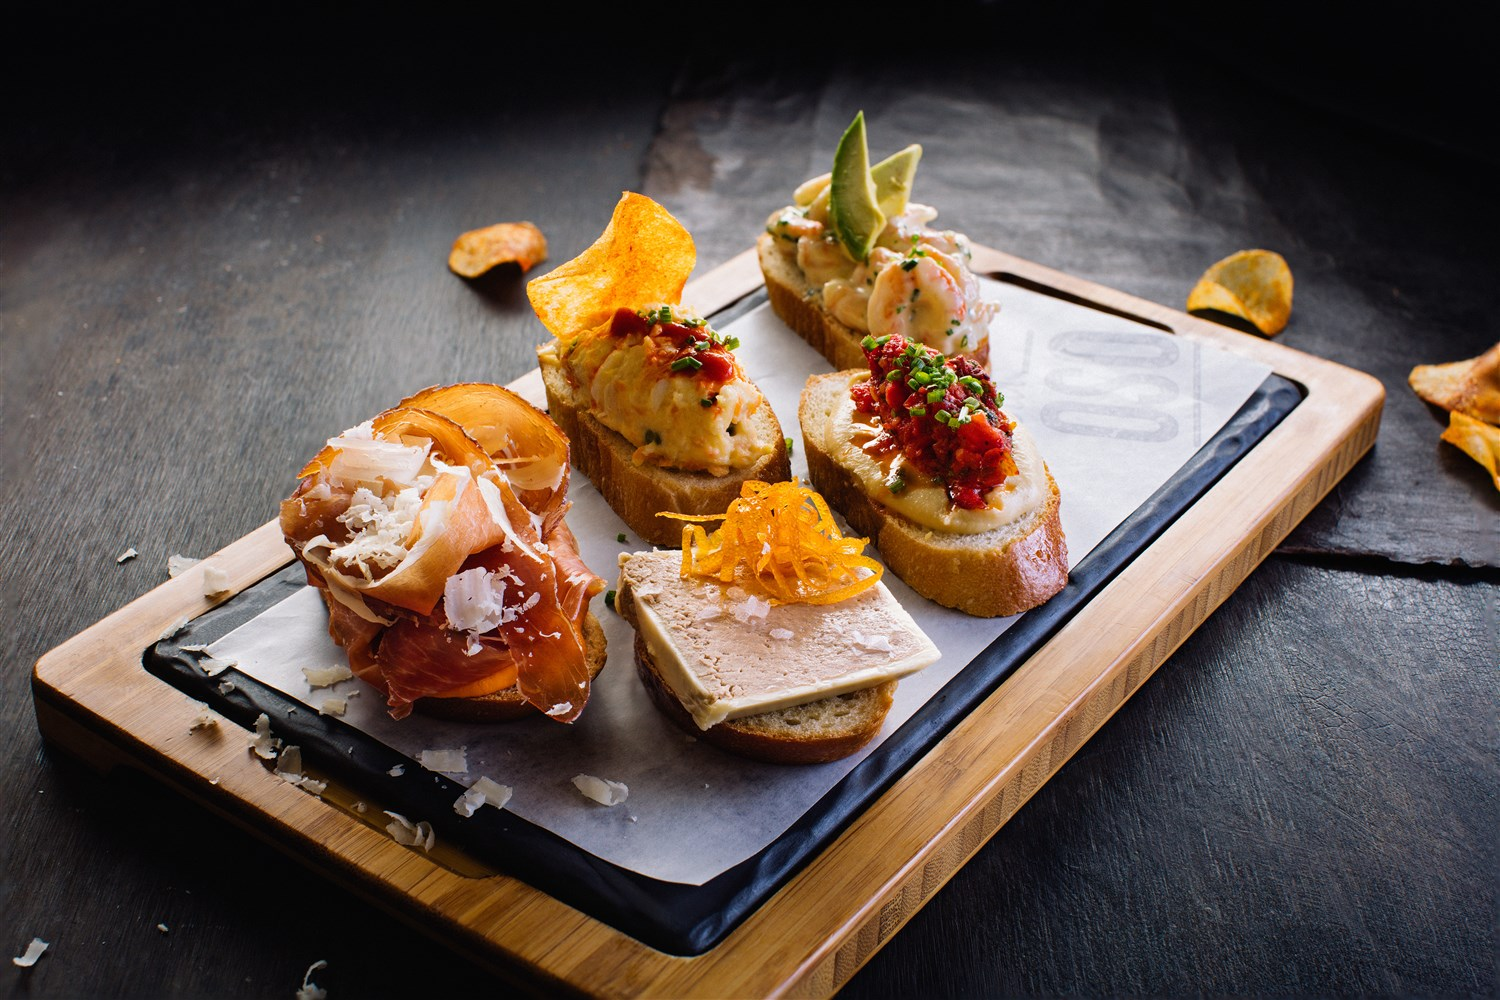 Montaditos are delicious and creative little sandwiches elemental to true Spanish tapas.  Bar Oso 's line-up includes a montadito of matane shrimp with avocado and yuzu, another of duck liver parfait with orange zest, a glorified ham and cheese with serrano, manchego and a romesco sauce, and more.  Kevin Clark | Courtesy Toptable Group